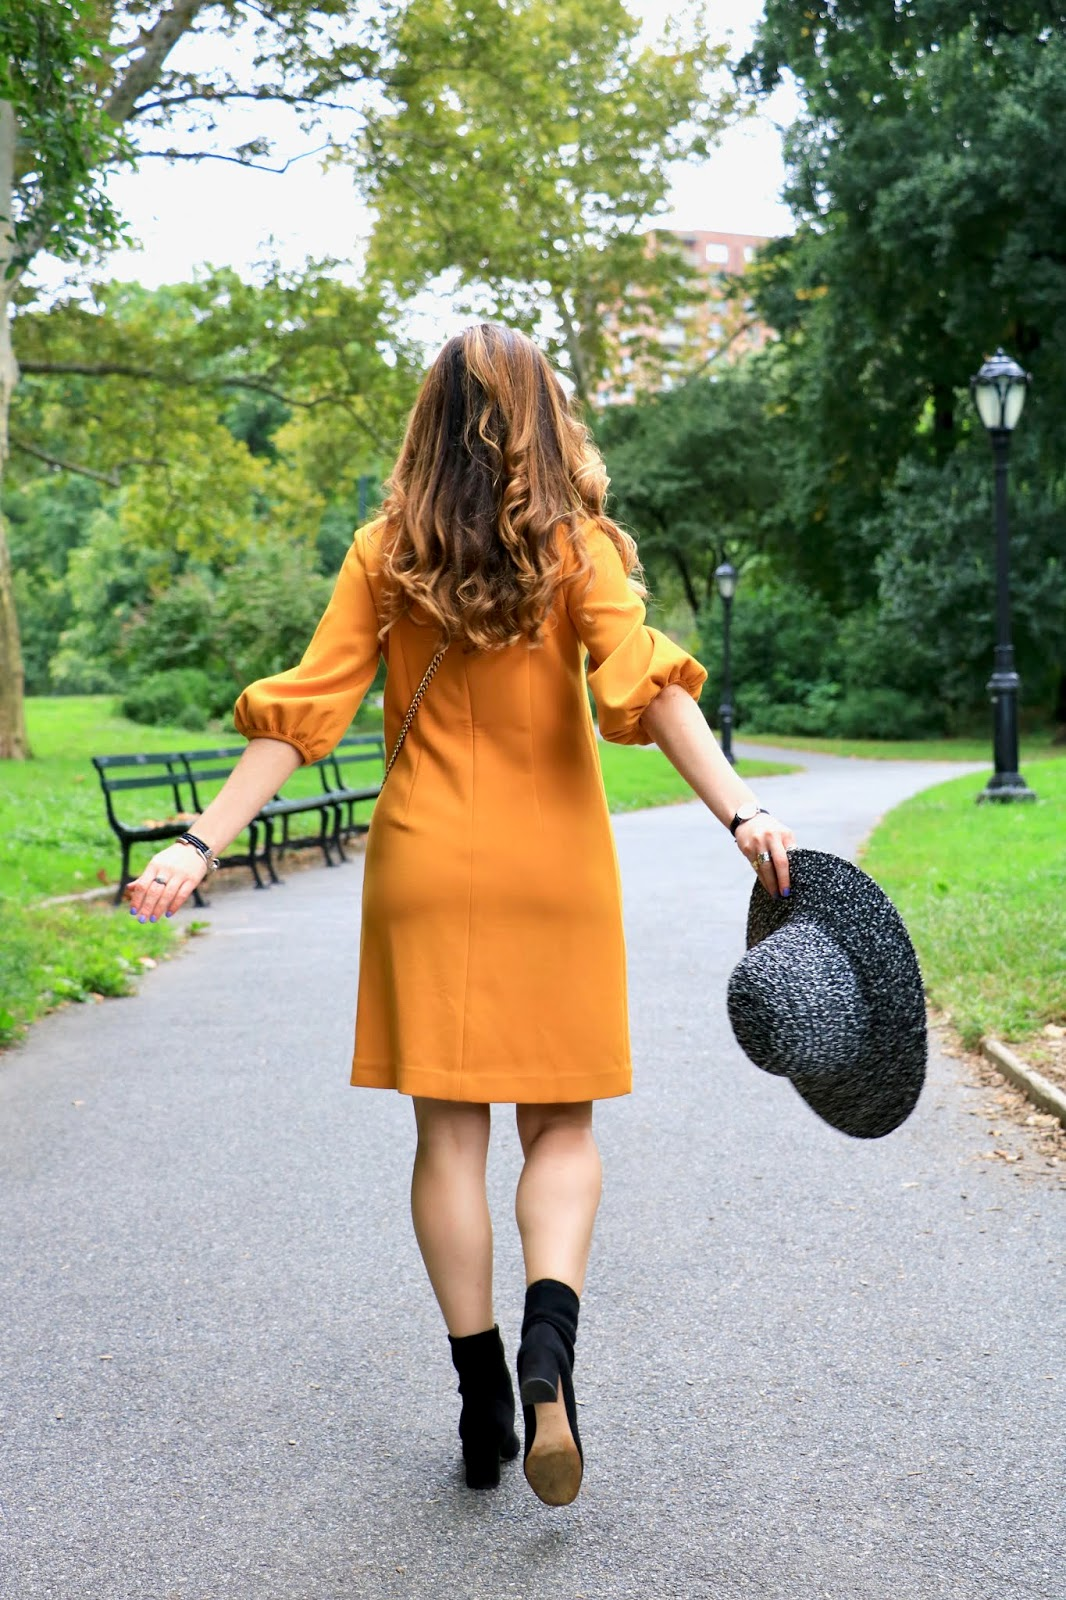 Nyc fashion blogger Kathleen Harper in Central Park